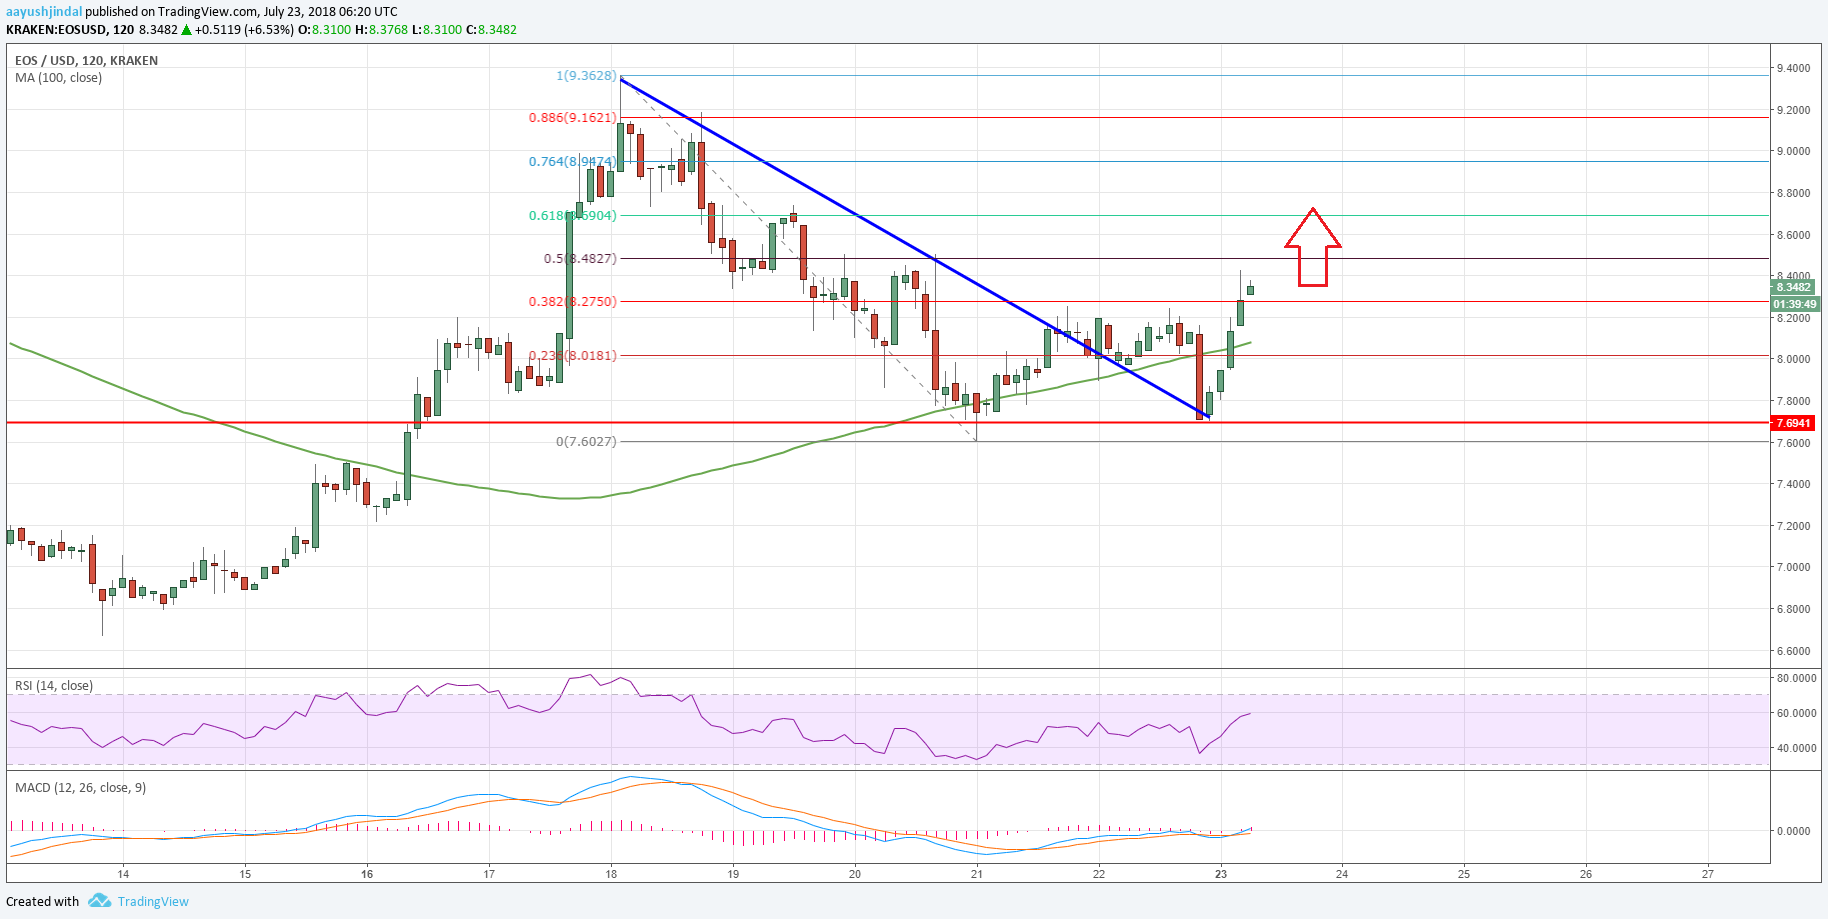 Litecoin Trend Chart >> EOS Price Analysis: EOS/USD is Likely to Test $10 - Ethereum World News